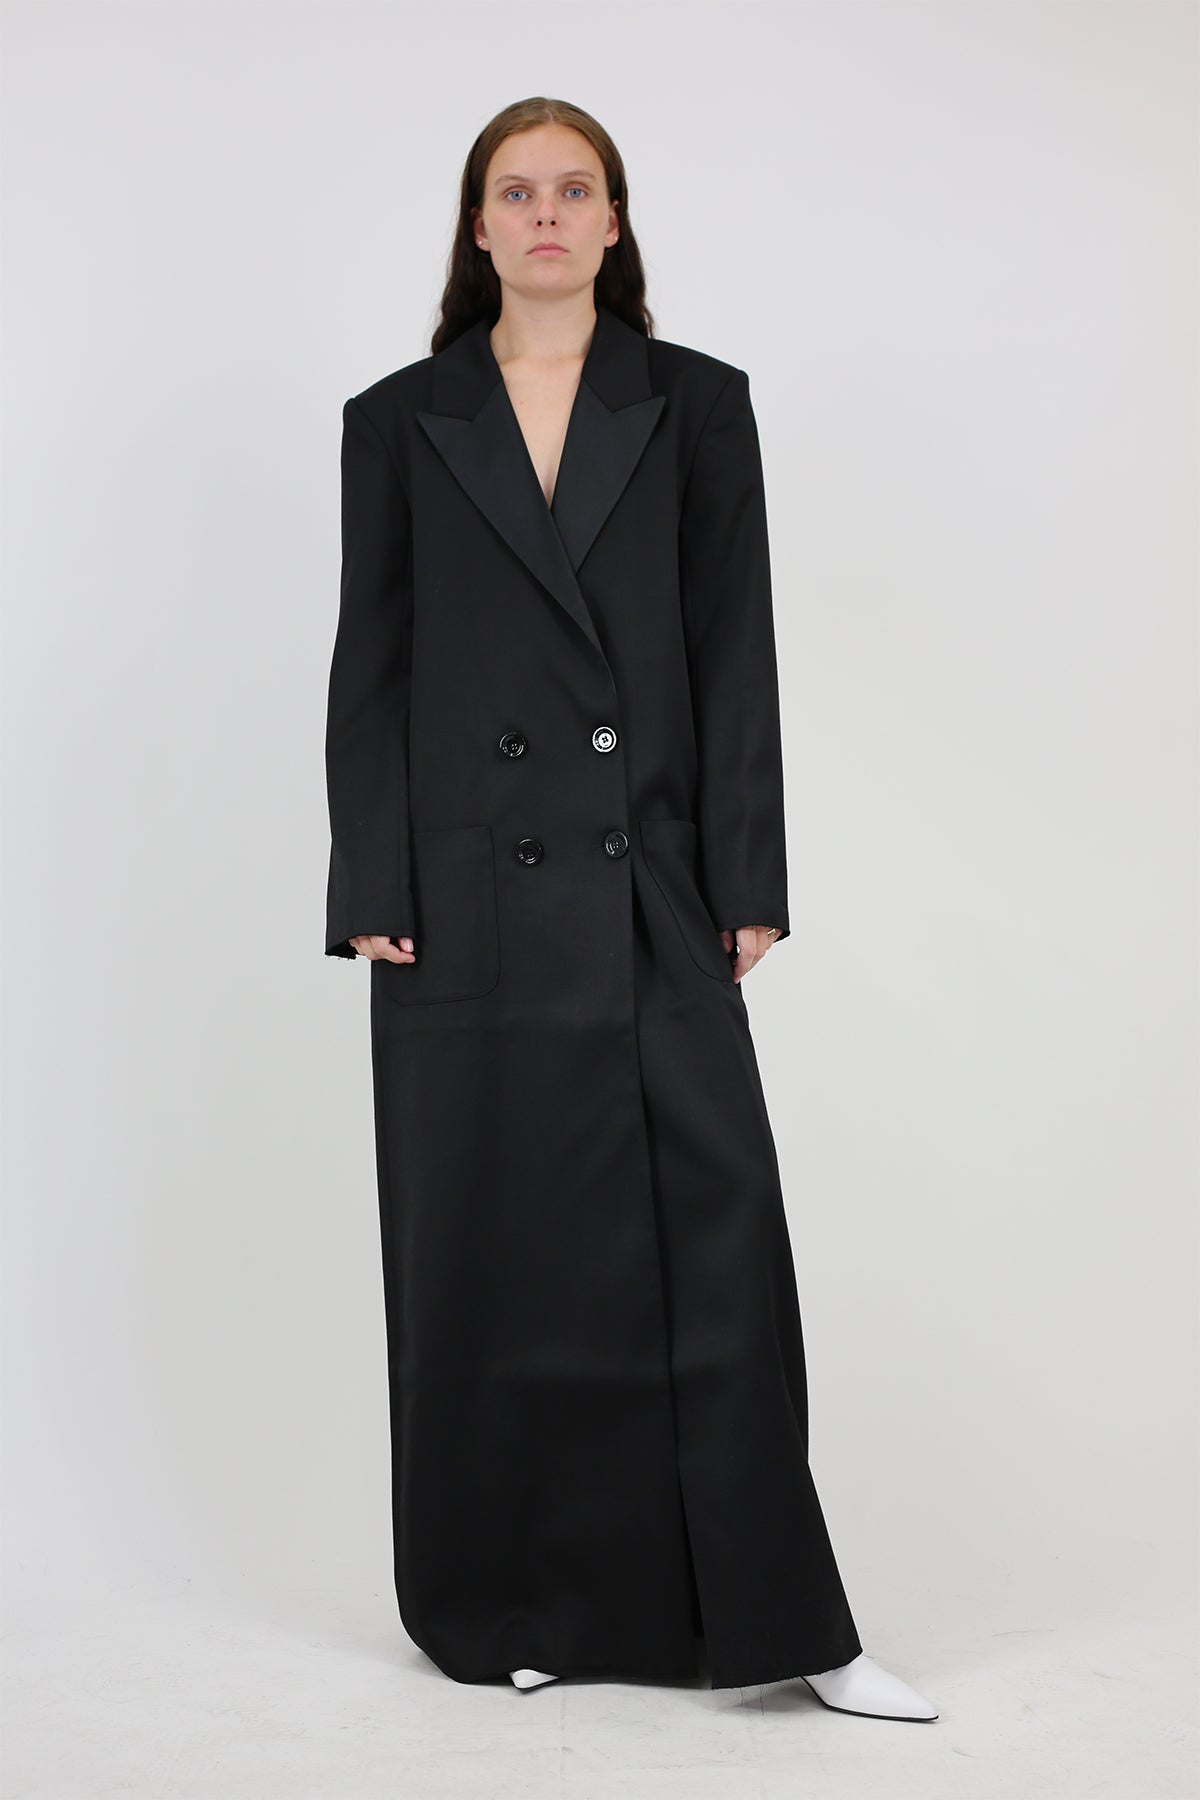 PRE-OWNED / BLACK LONG TUXEDO COAT - marques-almeida-dev